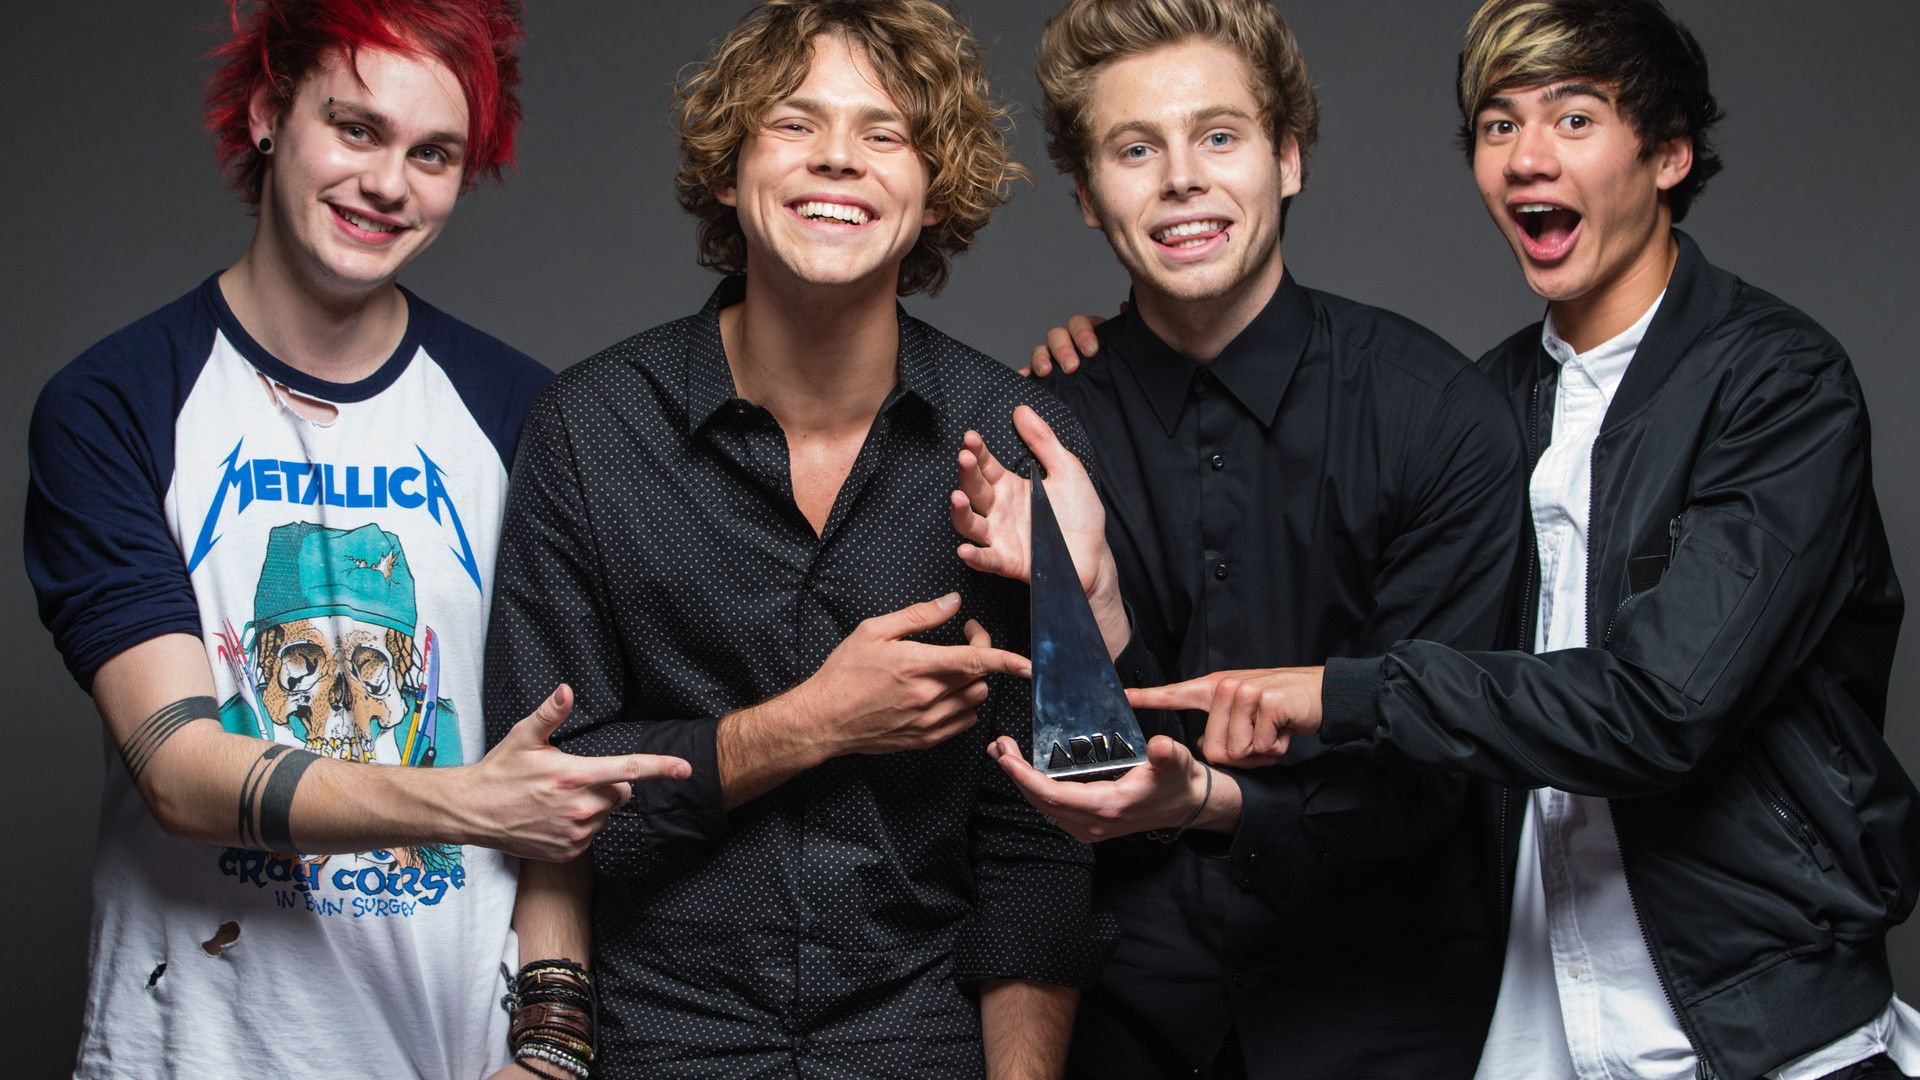 5 Seconds Of Summer Wallpapers Top Free 5 Seconds Of Summer